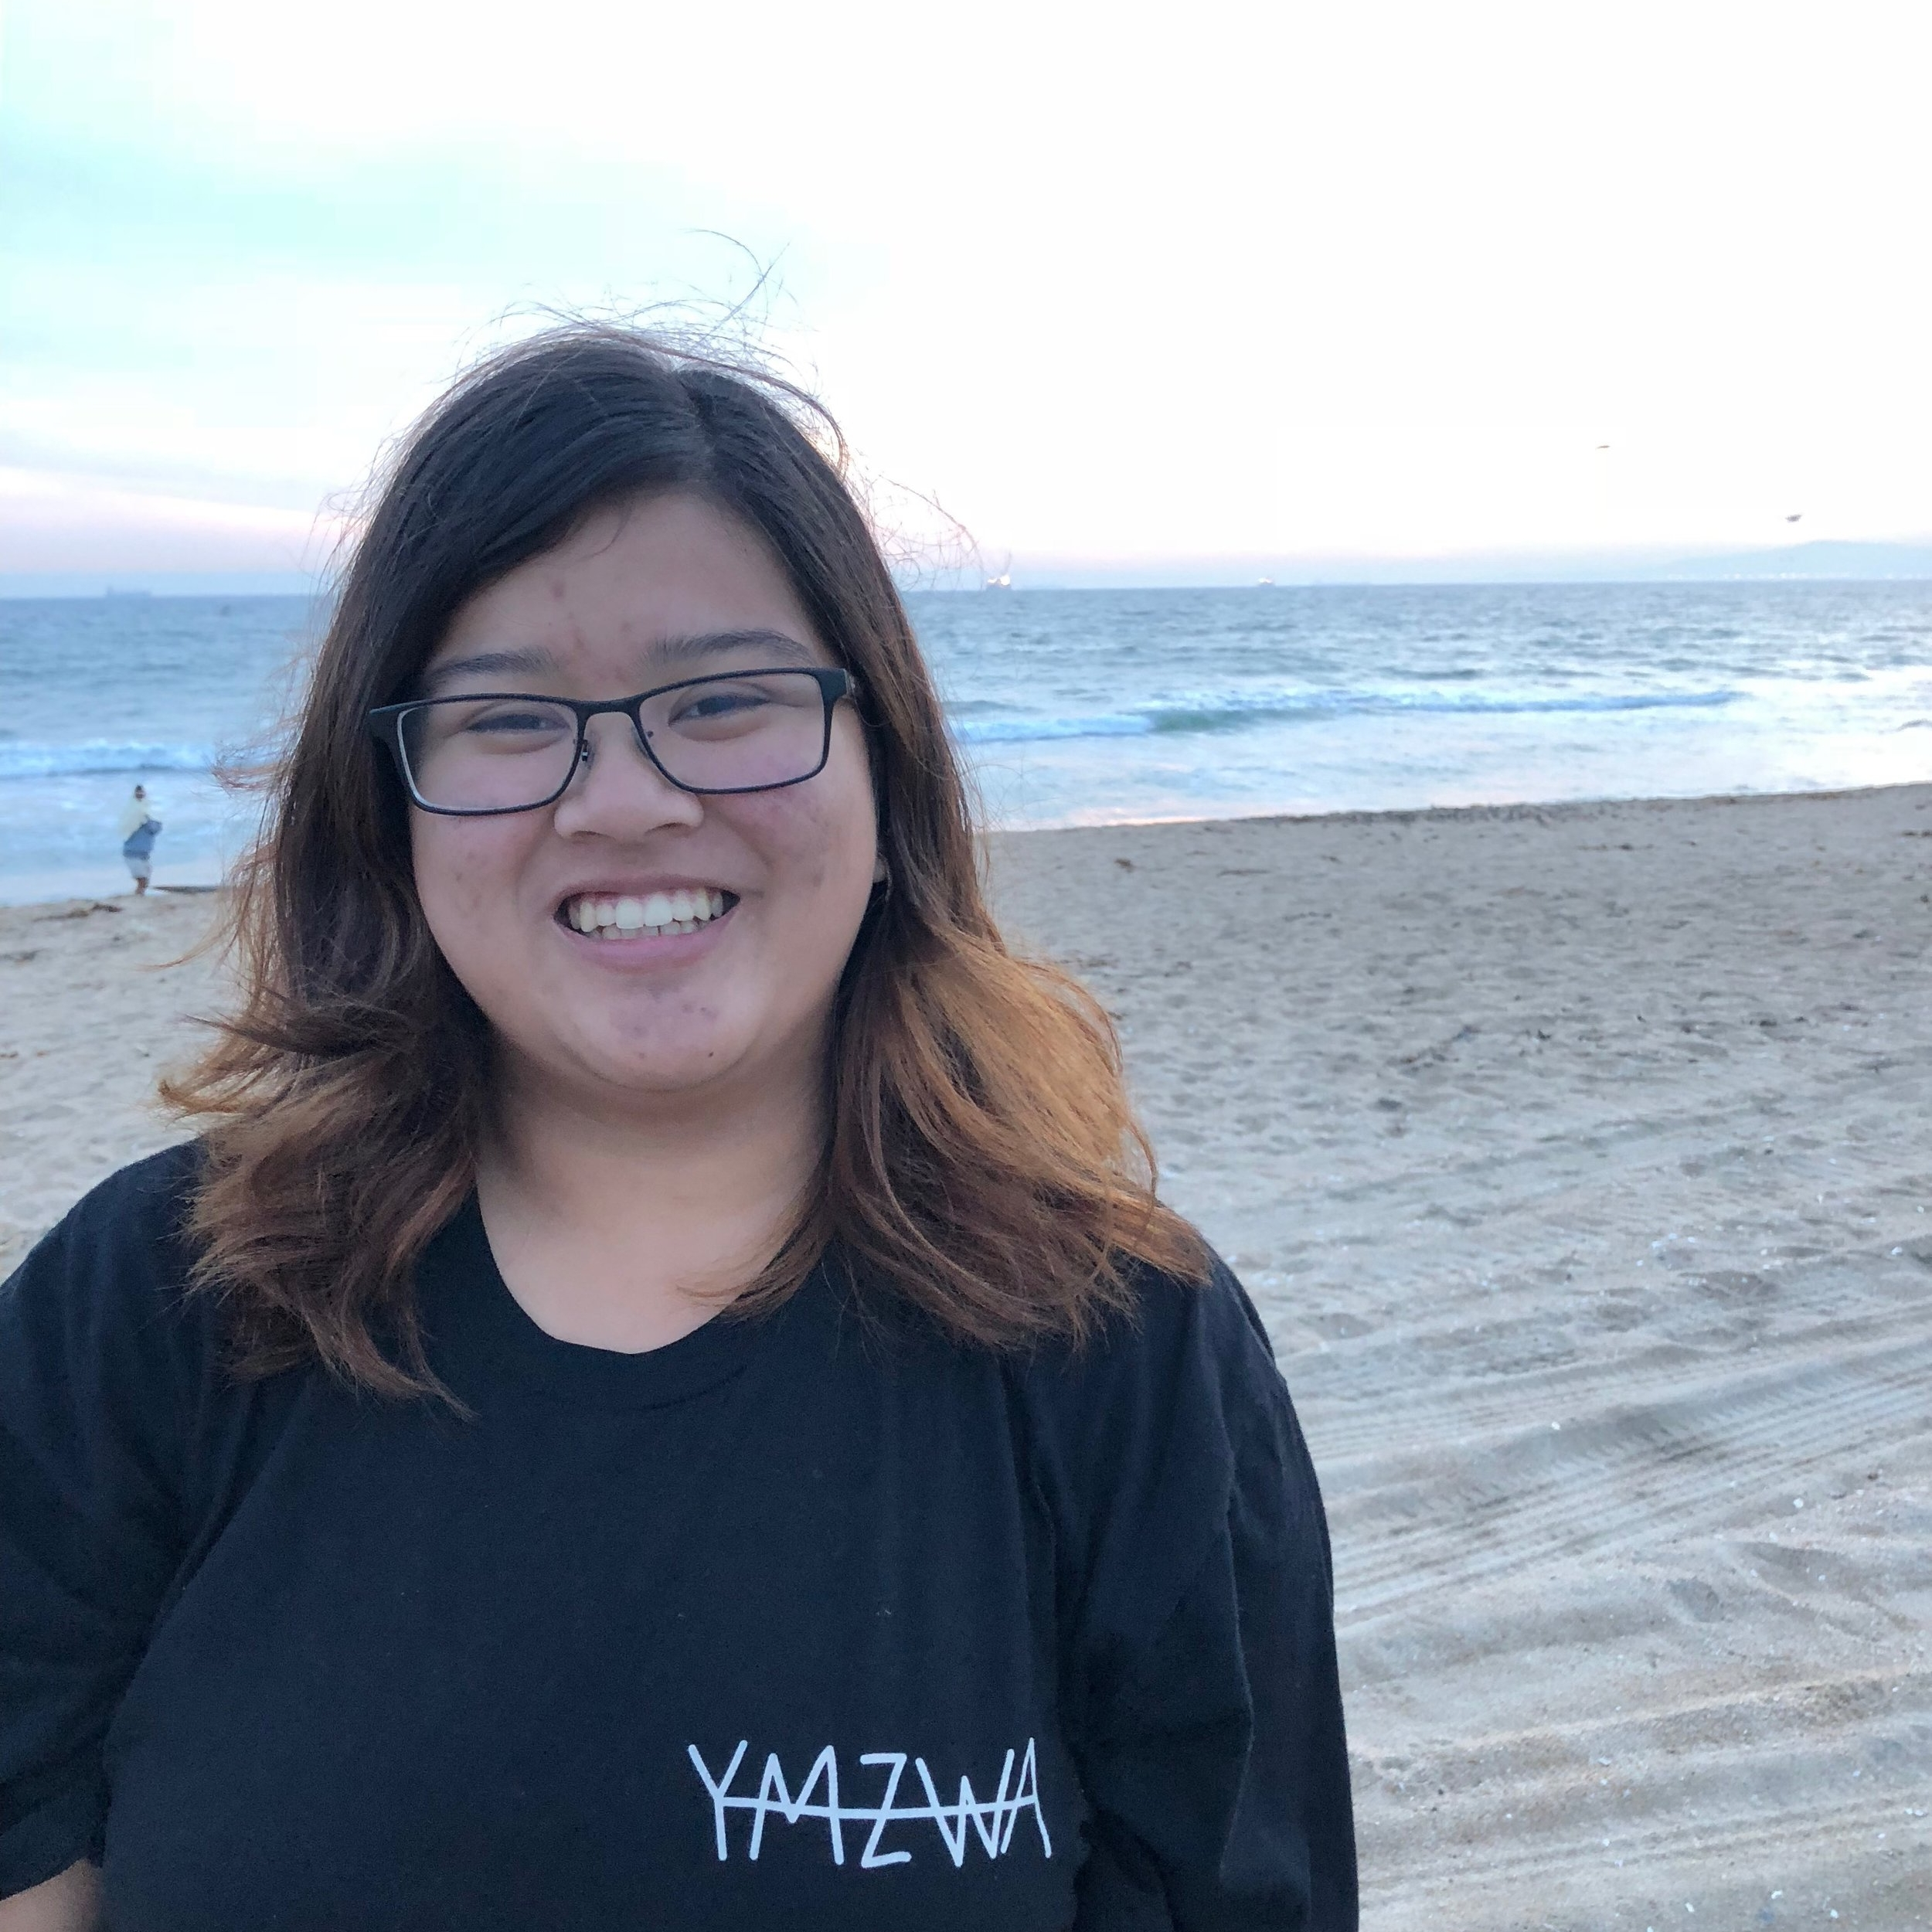 Daniella Caluza - Hospitality Committee Co-Chair, she/herDaniella is a sophomore majoring in Comparative Studies in Race and Ethnicity. She is passionate about providing spaces for FLI voices to be heard and recognized. Despite growing up in a low-income neighborhood for almost all her life, Daniella did not fully understand her FLI identity until coming to college. Being a part of this team is her way of giving back to a community that has greatly helped her, and empowering other FLI students. In her free time, she enjoys reading, music, spending time with friends, and balancing her (over)commitments to various groups on campus.